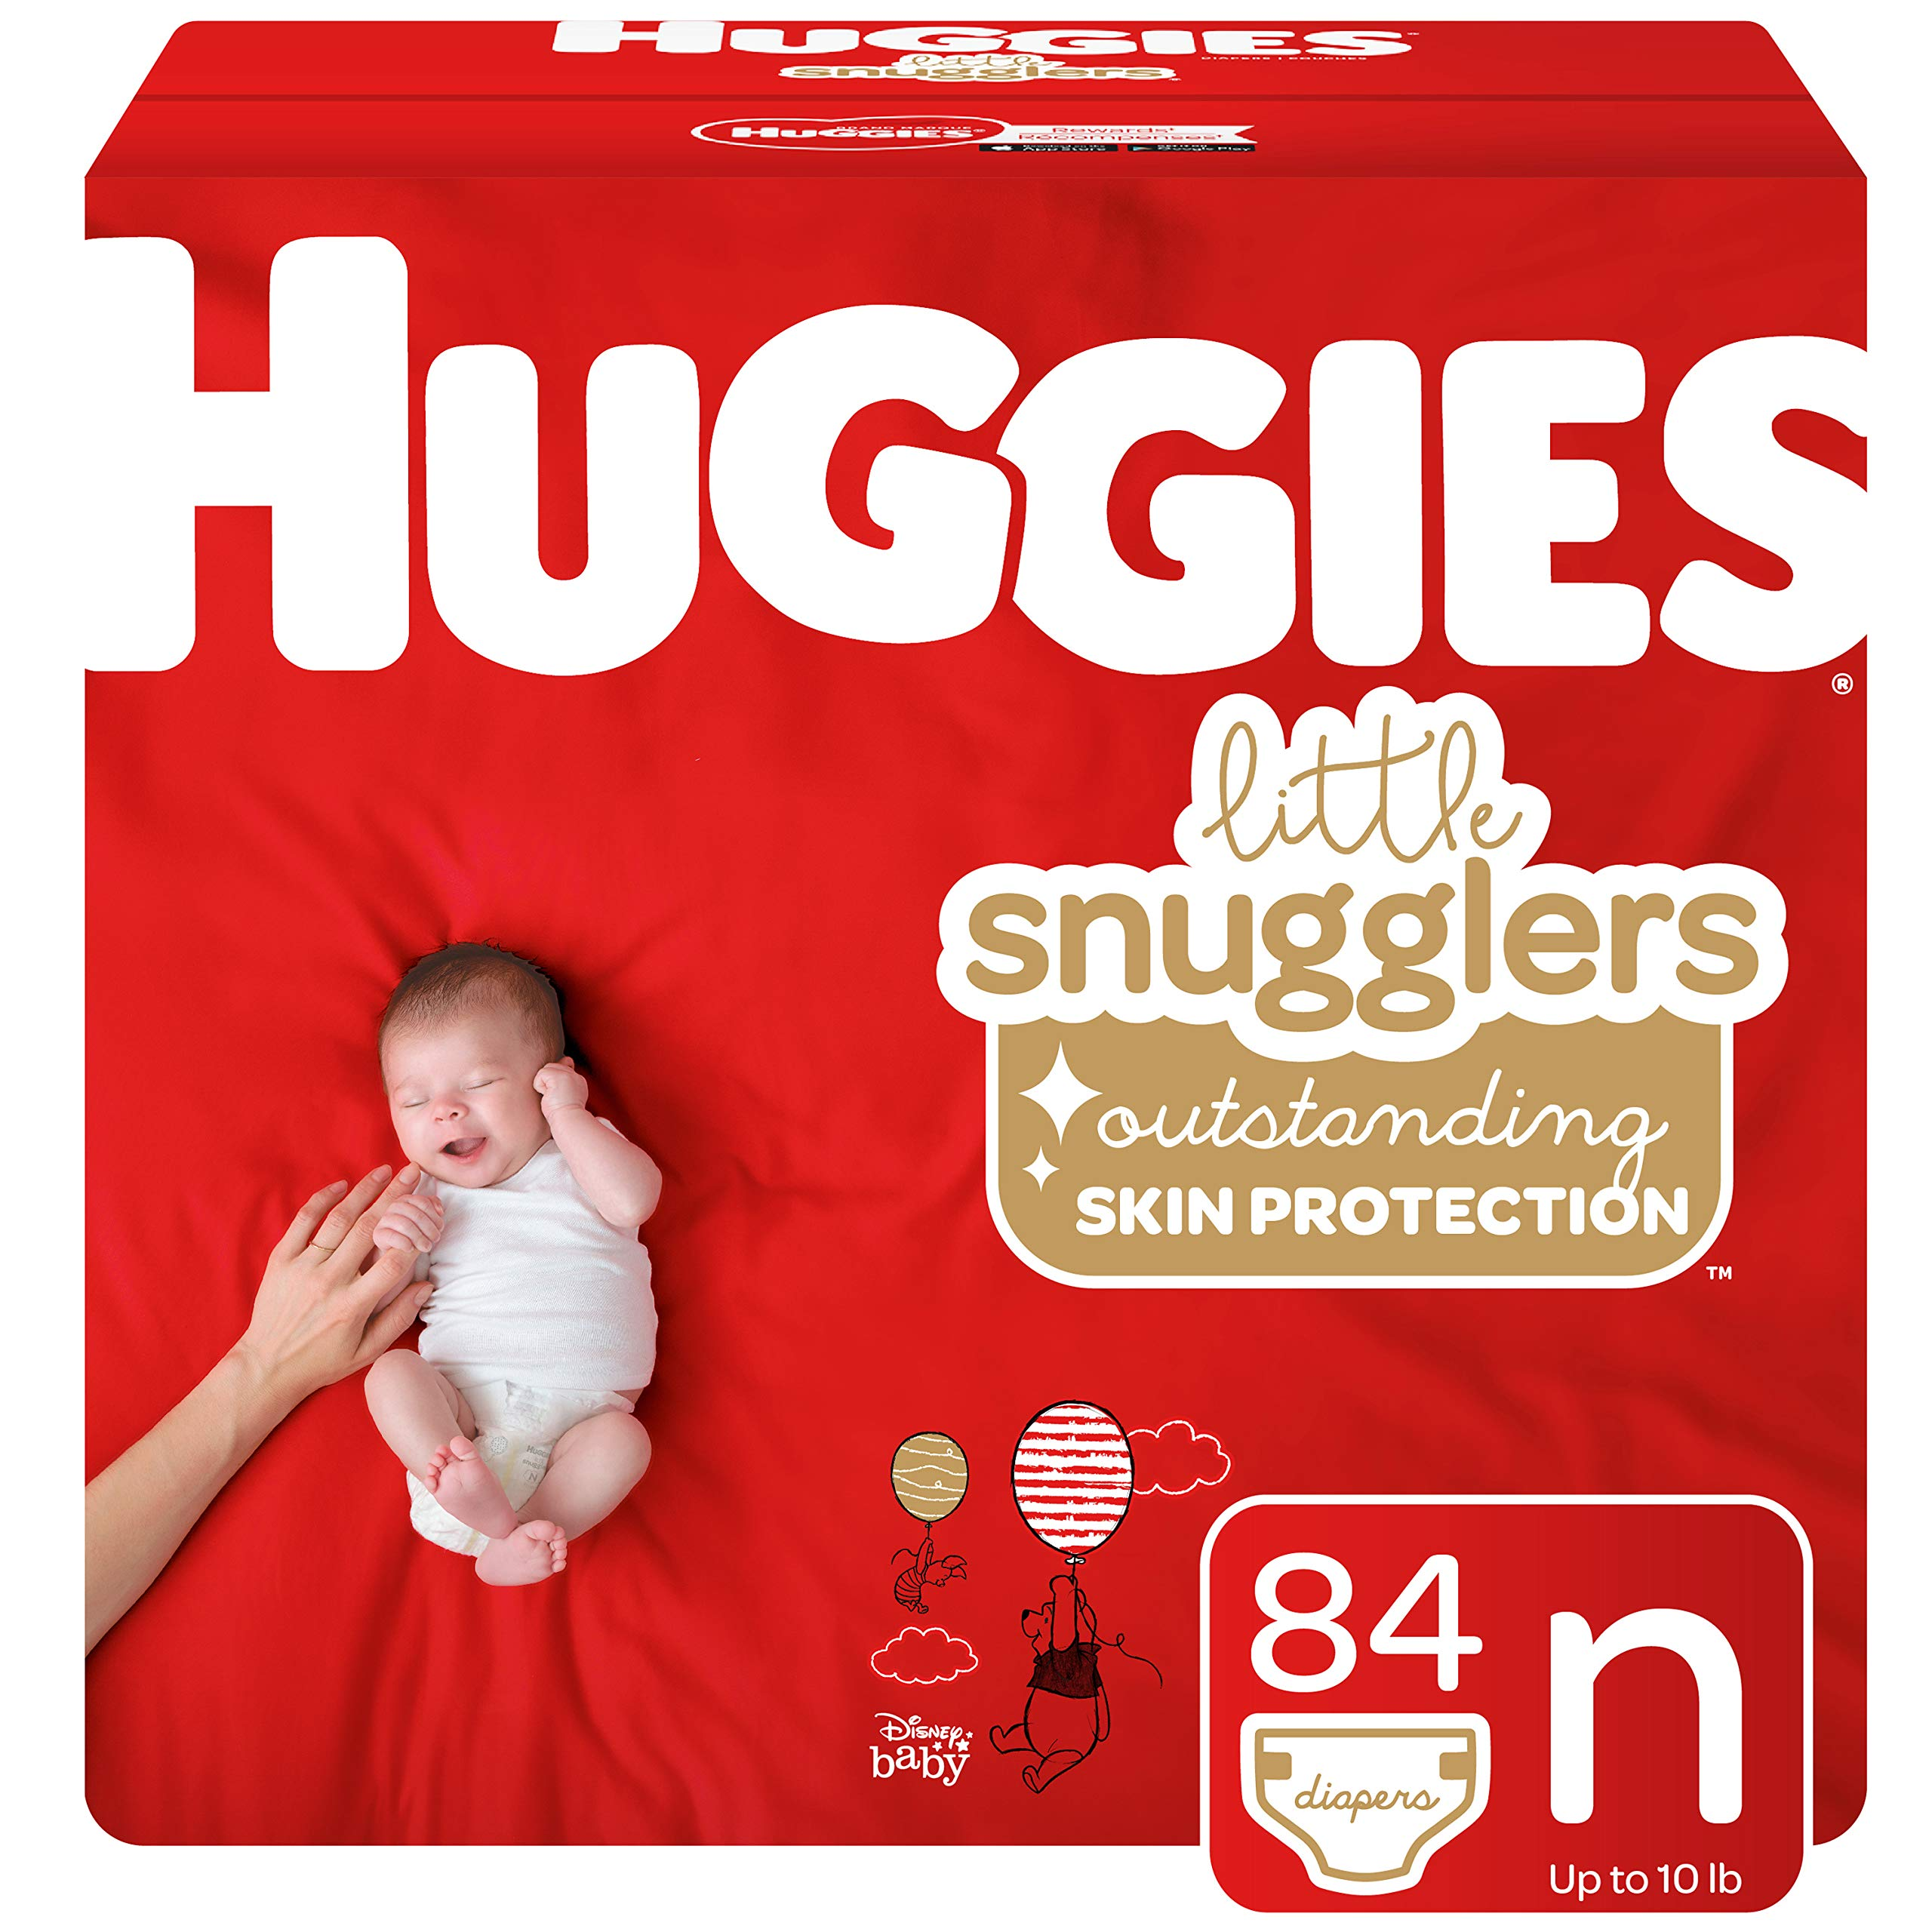 Huggies Little Snugglers Baby Diapers, Size Newborn, 84 Count (Packaging May Vary) by Huggies (Image #1)